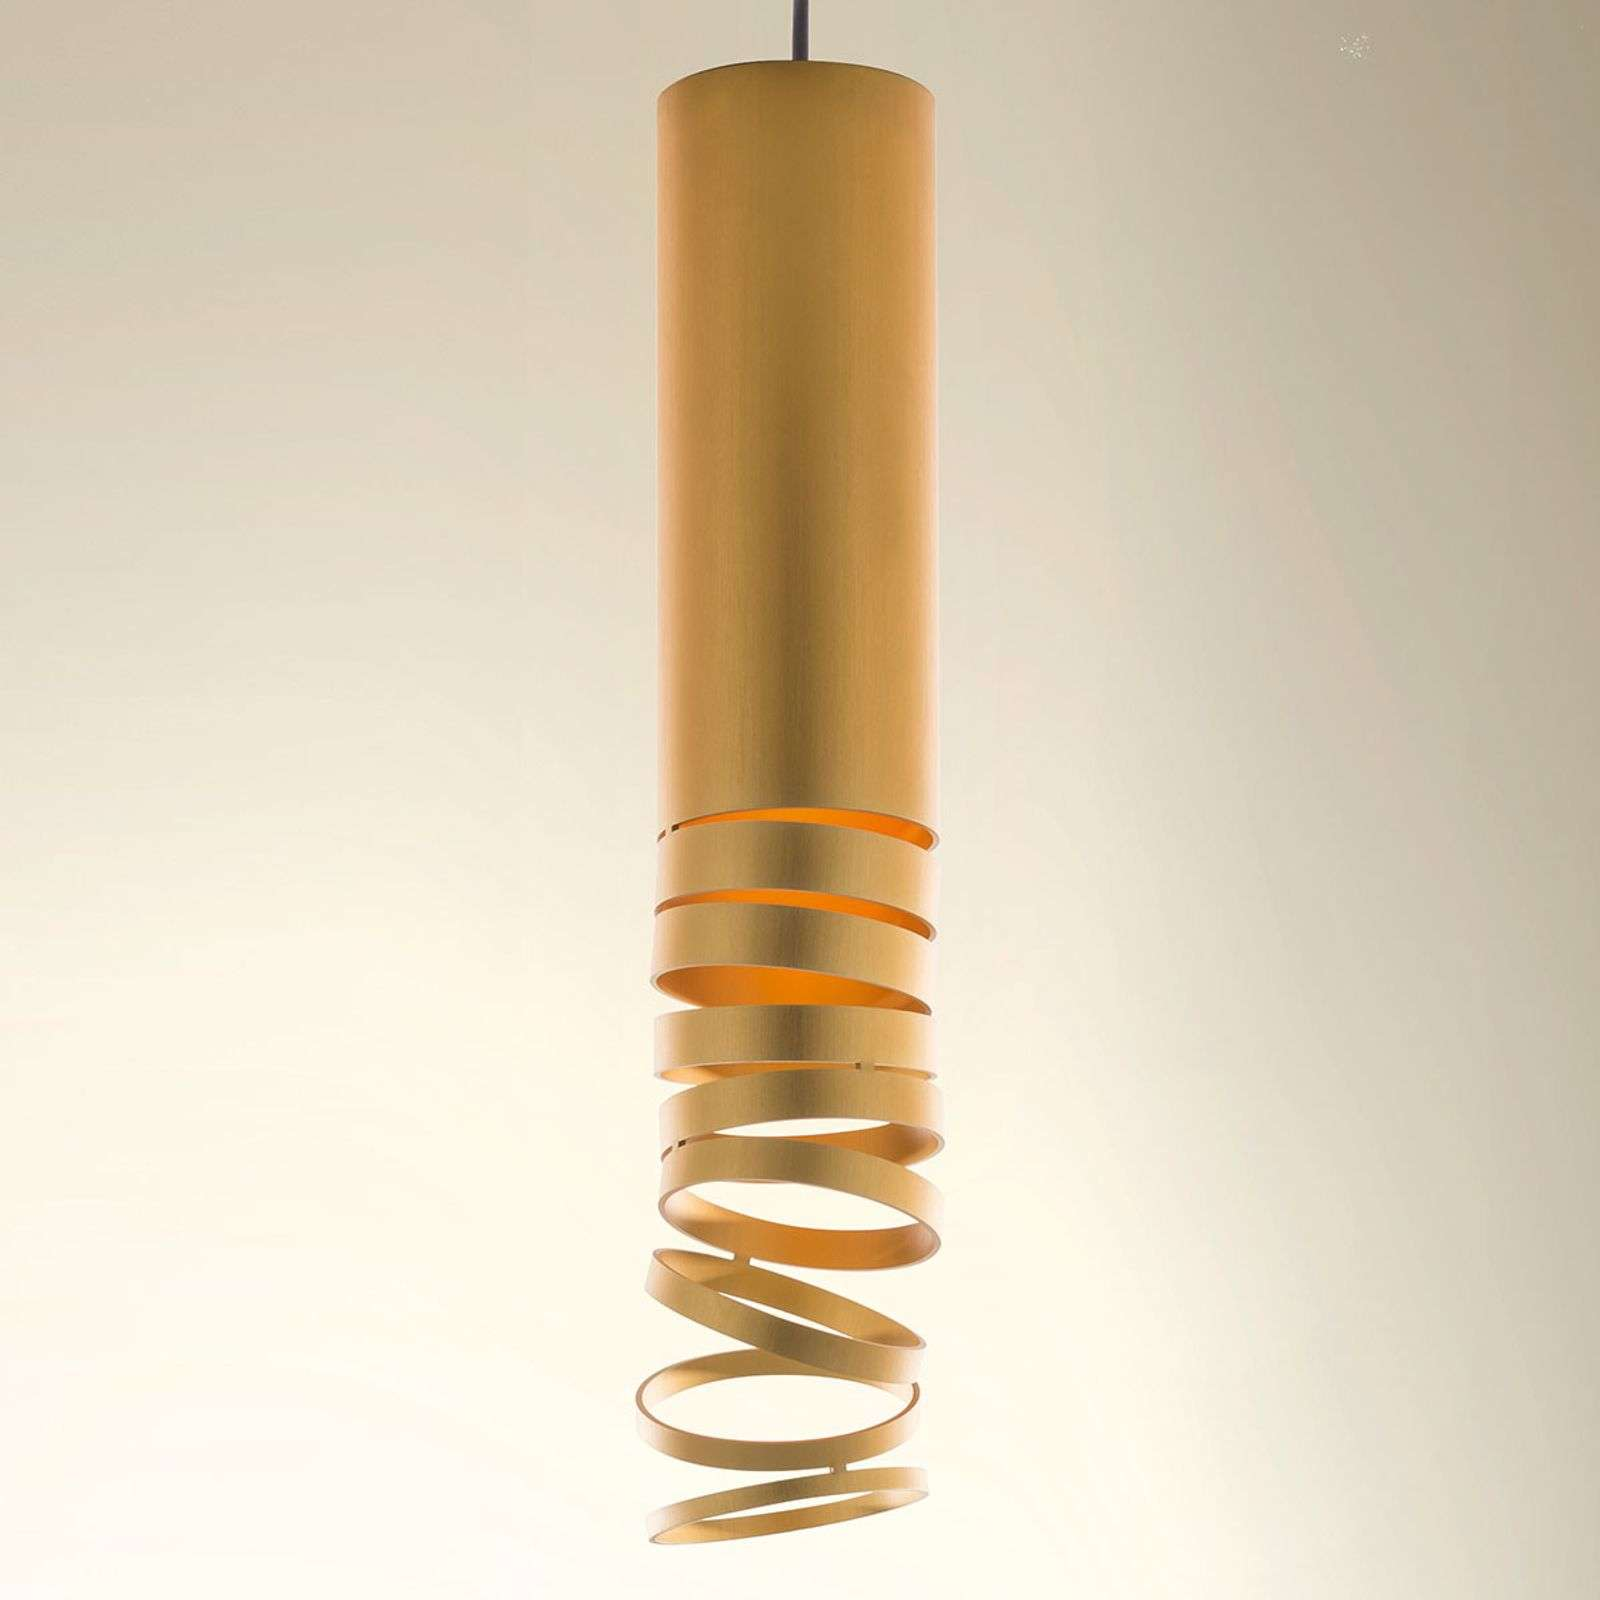 Artemide Decomposé hanglamp goud